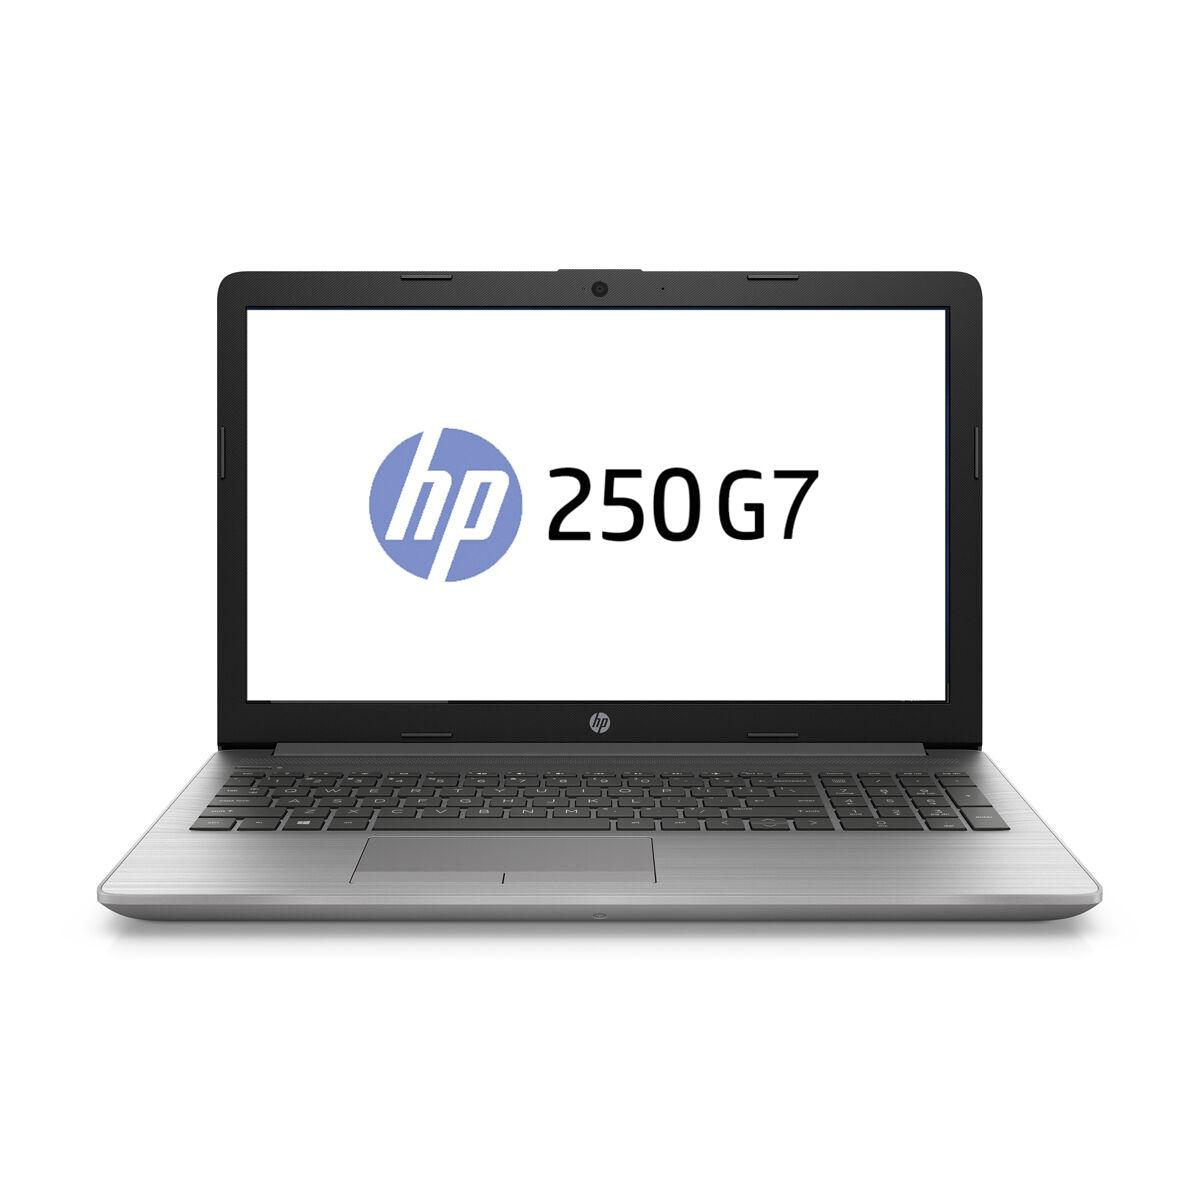 "Лаптоп HP ProBook 250 G7, Intel Core i3-7020U, 8GB DDR4, SSD 256GB m.2, FHD 15.6"", Сребрист"